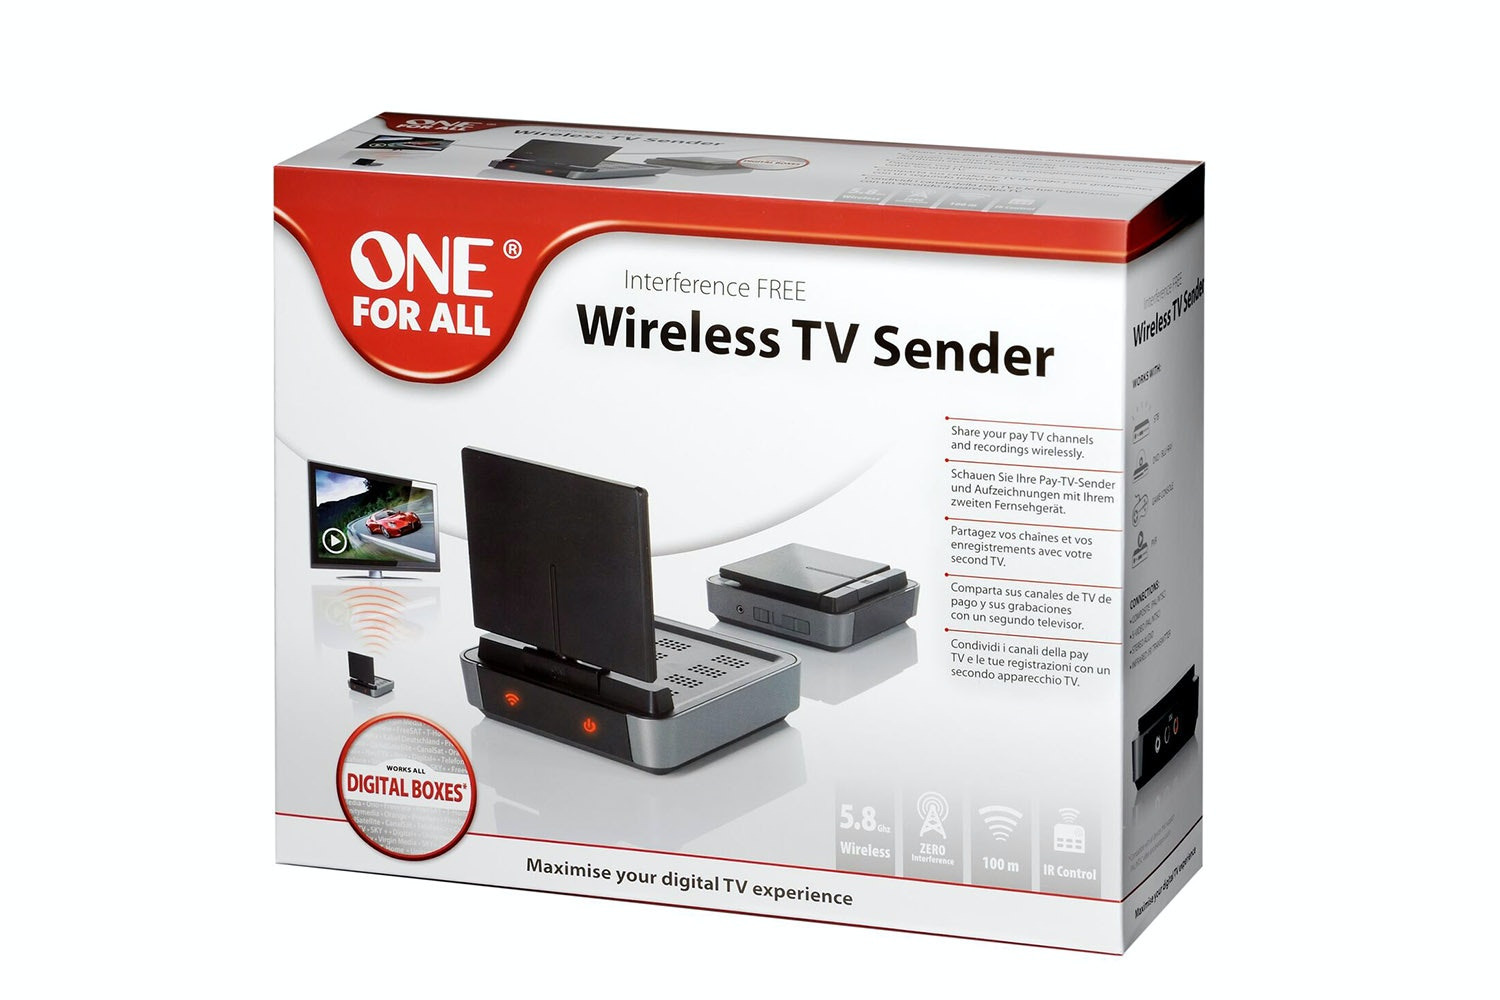 One For All Wireless TV Sender | Black